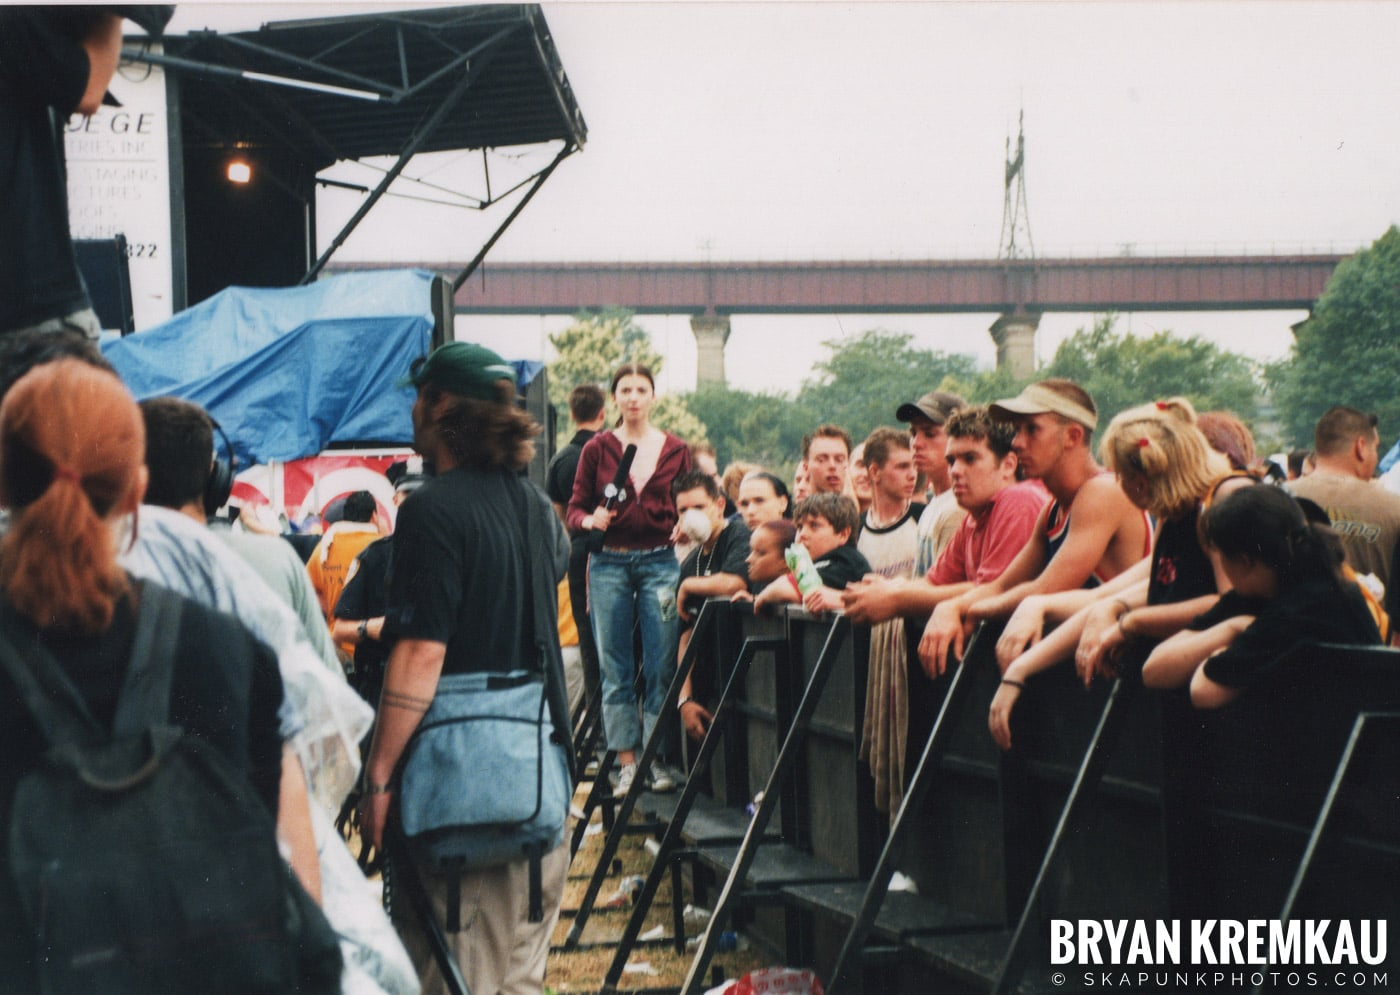 Crowd Shots @ Vans Warped Tour, Randall's Island, NYC - 8.4.01 (8)